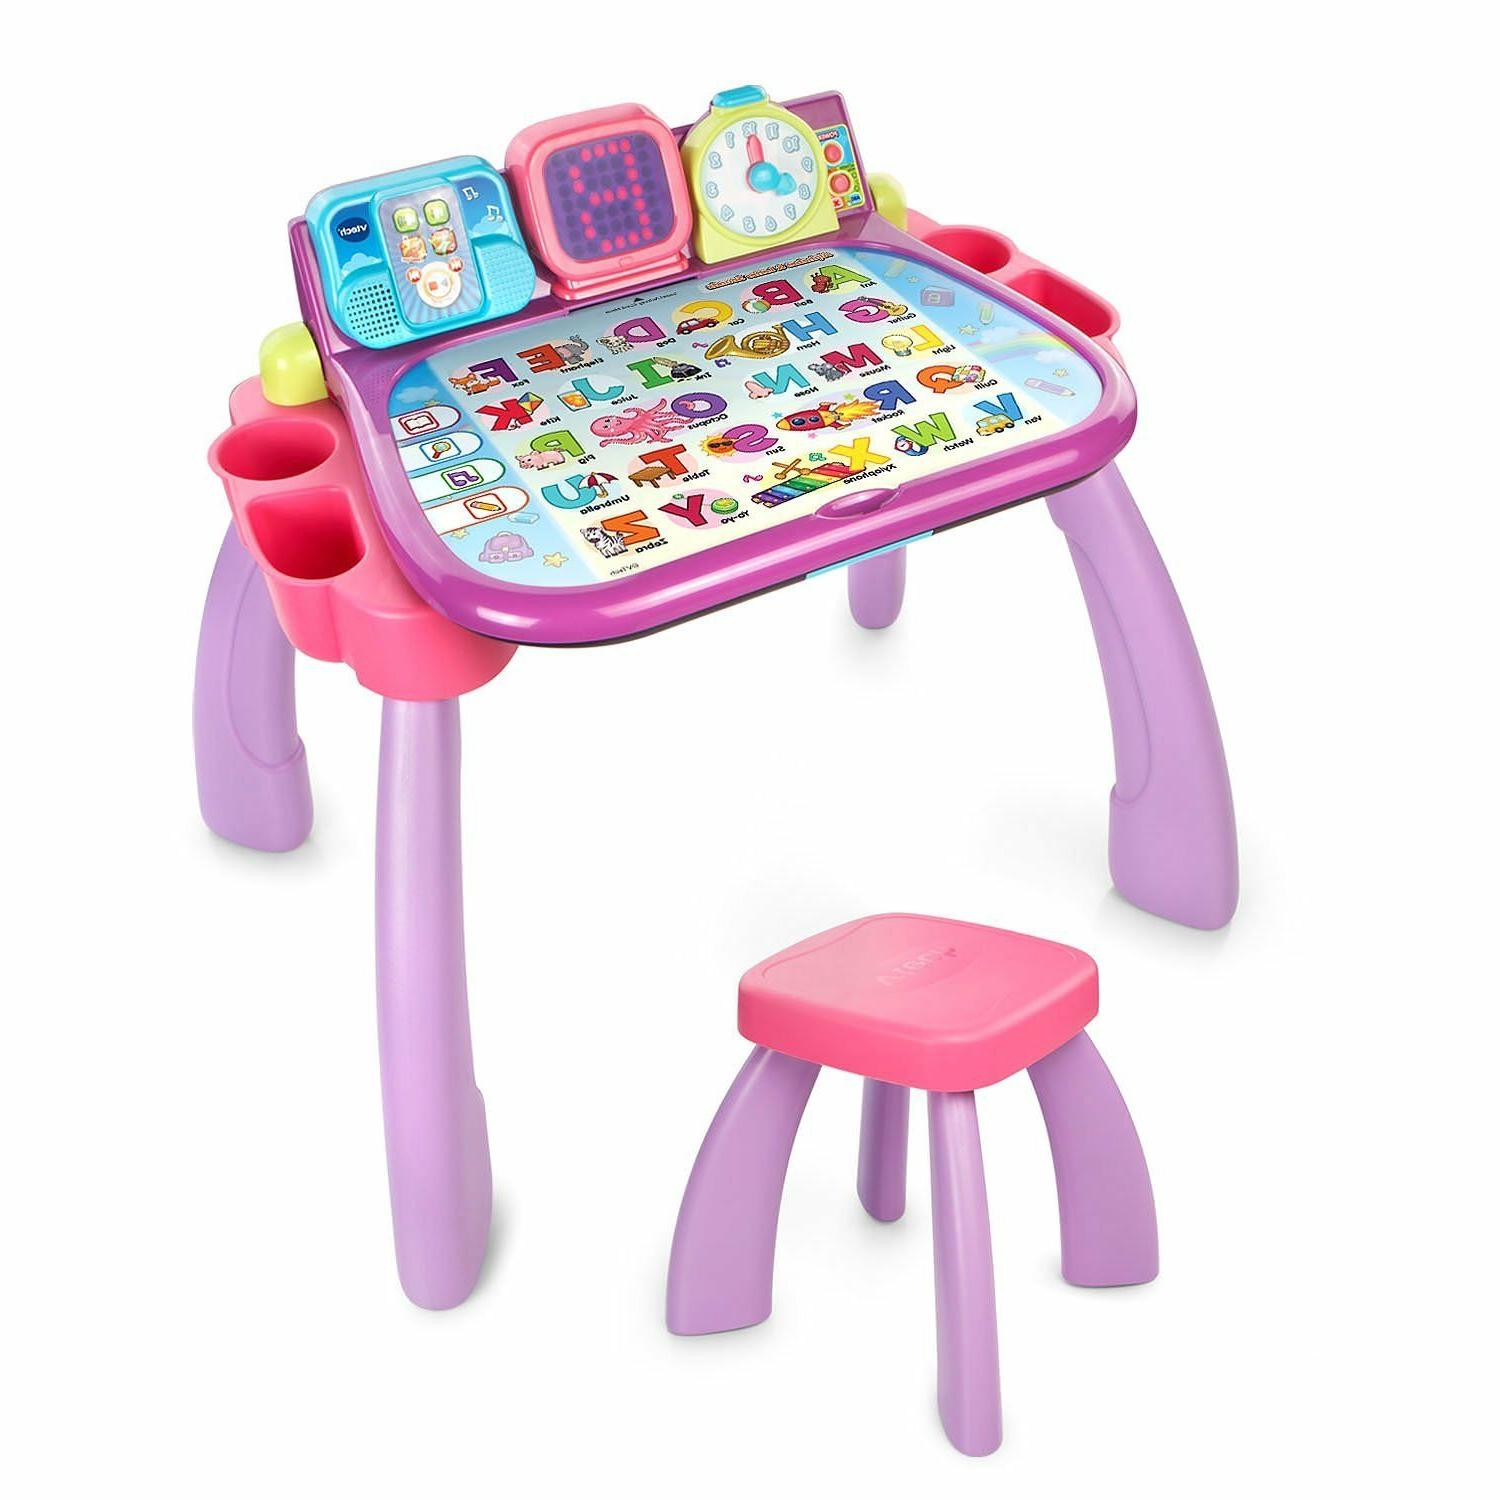 VTech Learn Activity 3-in-1 Desk